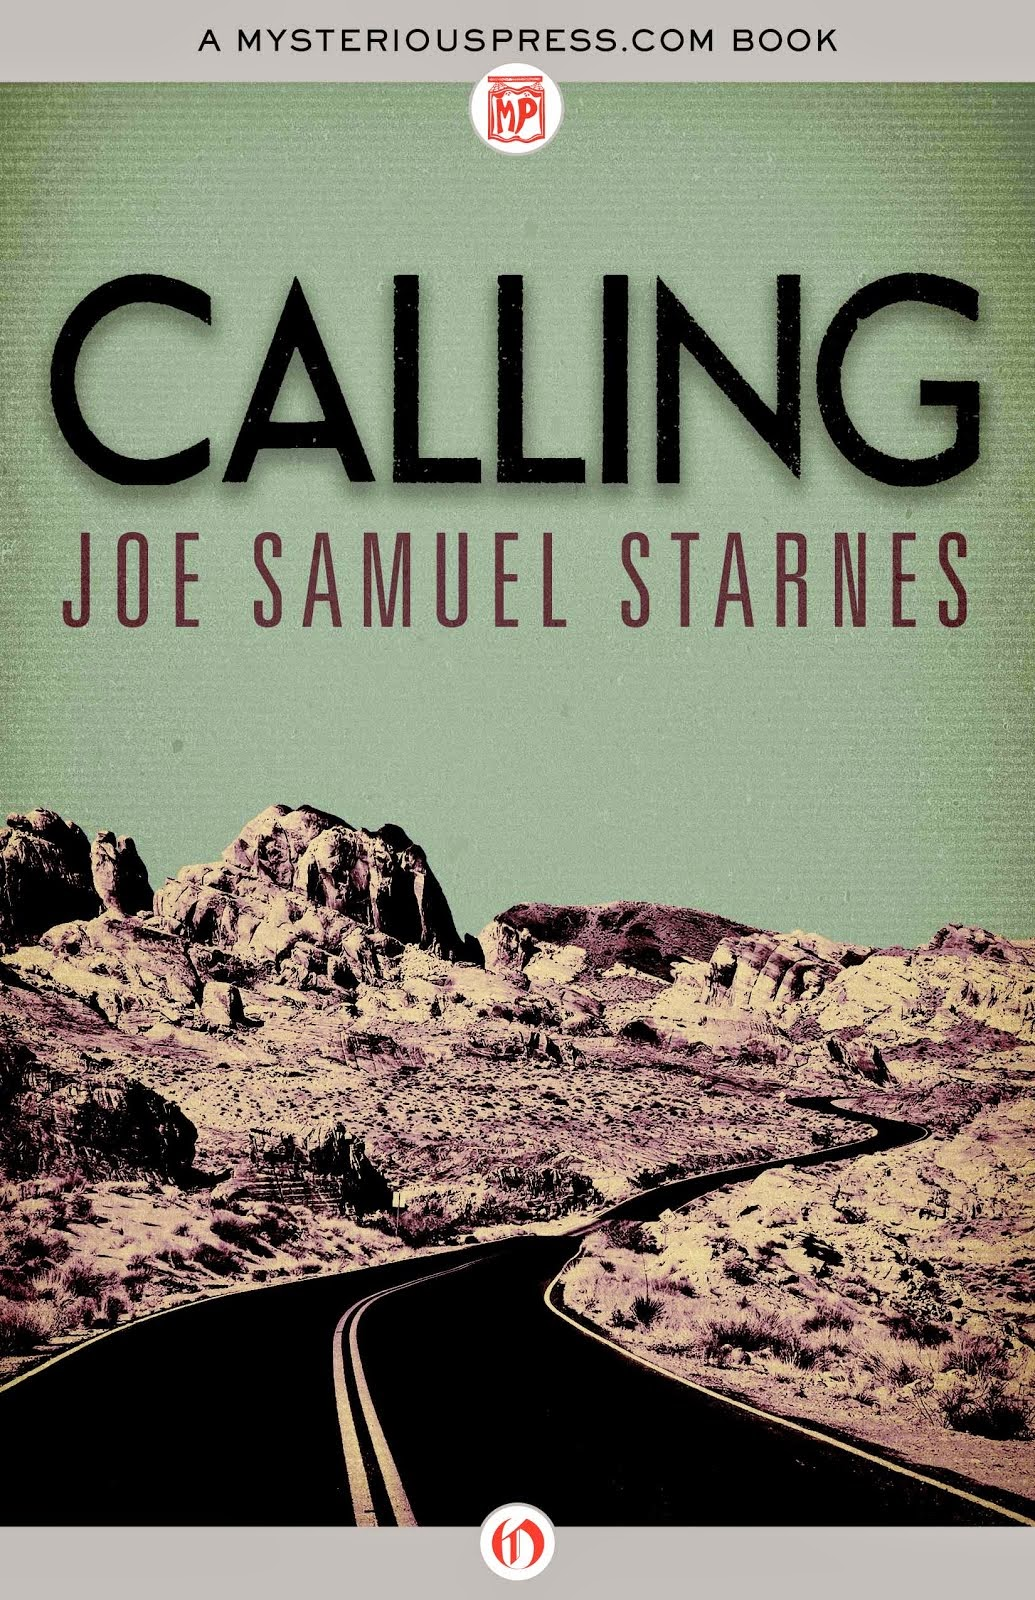 About Calling